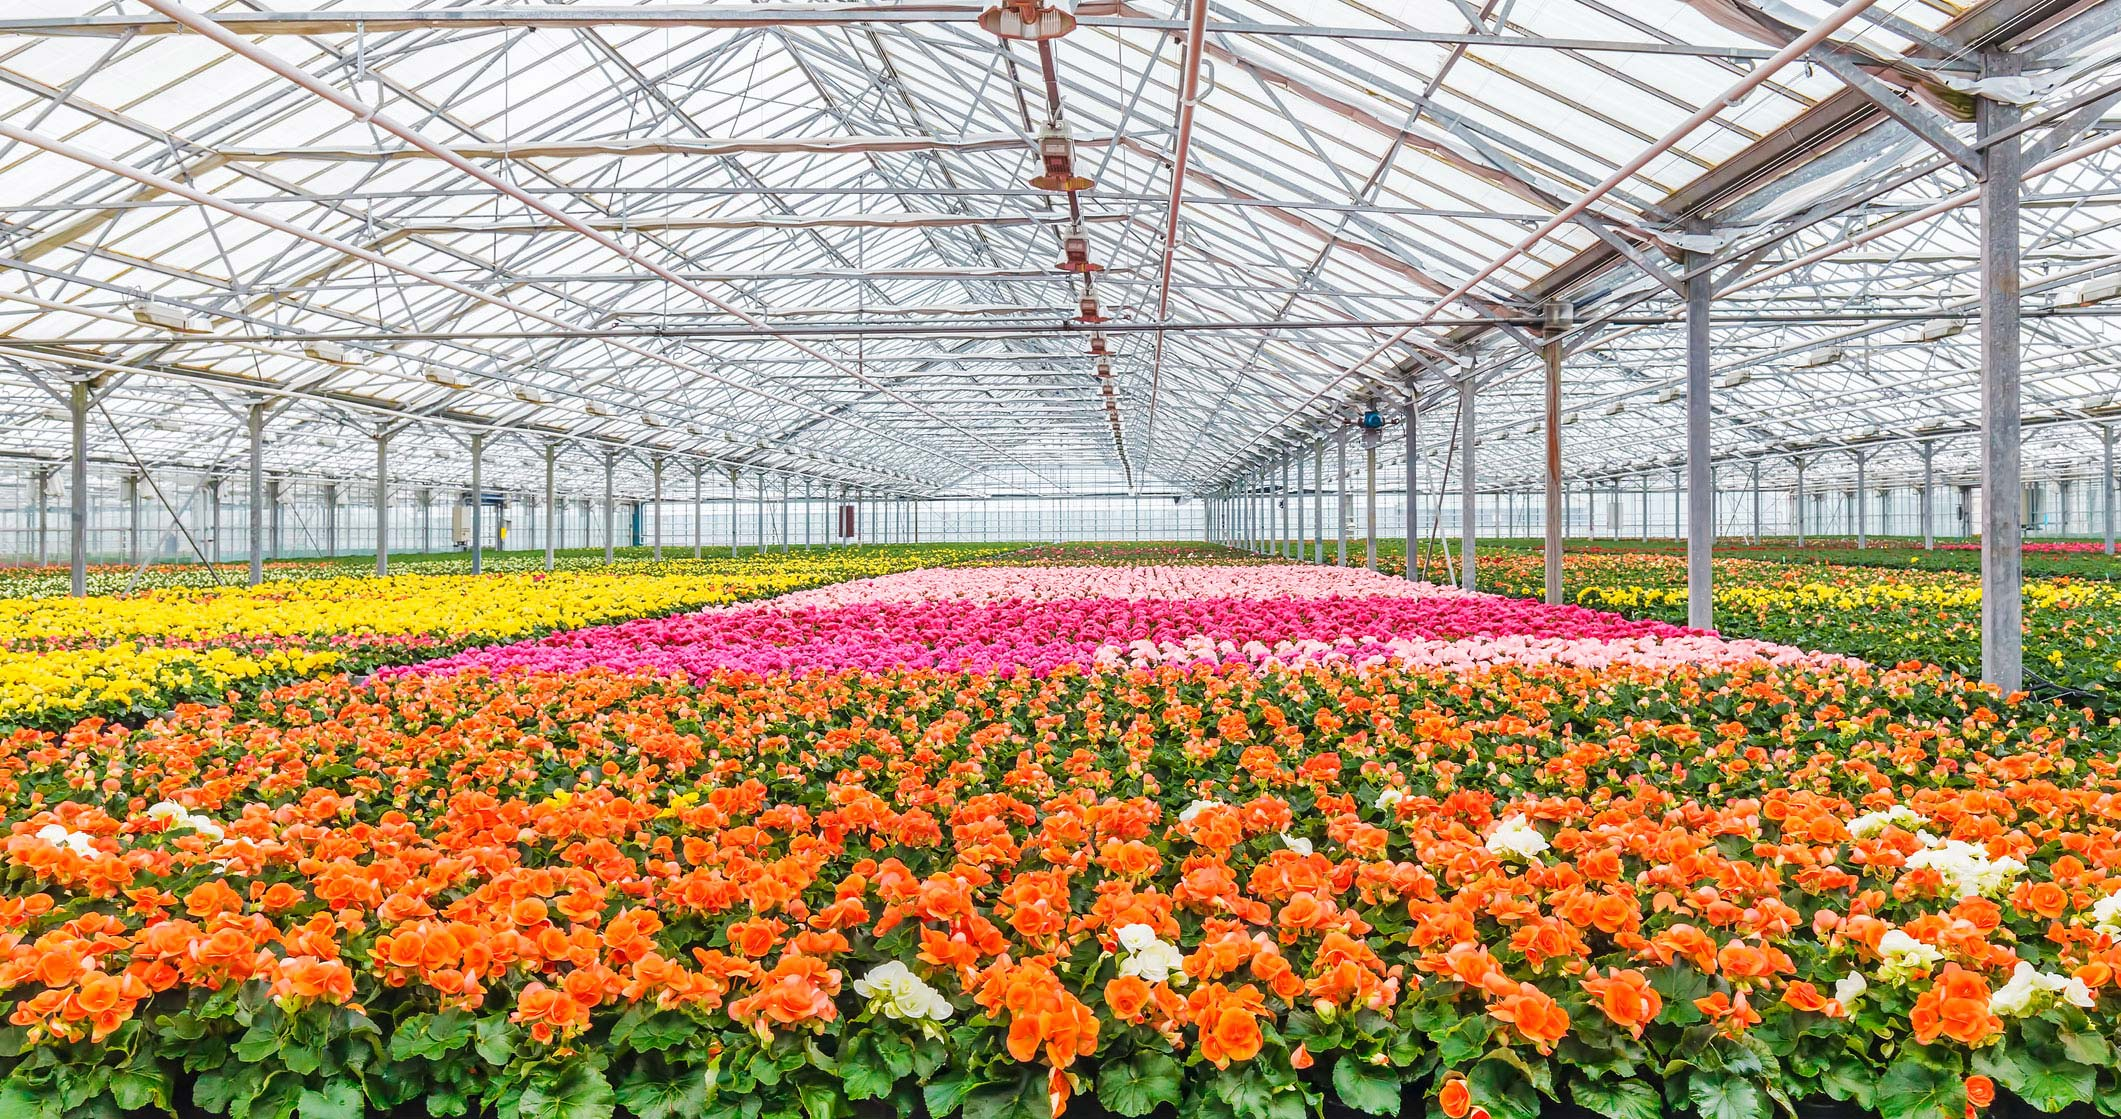 Image of a greenhouse containing flowers of different colors